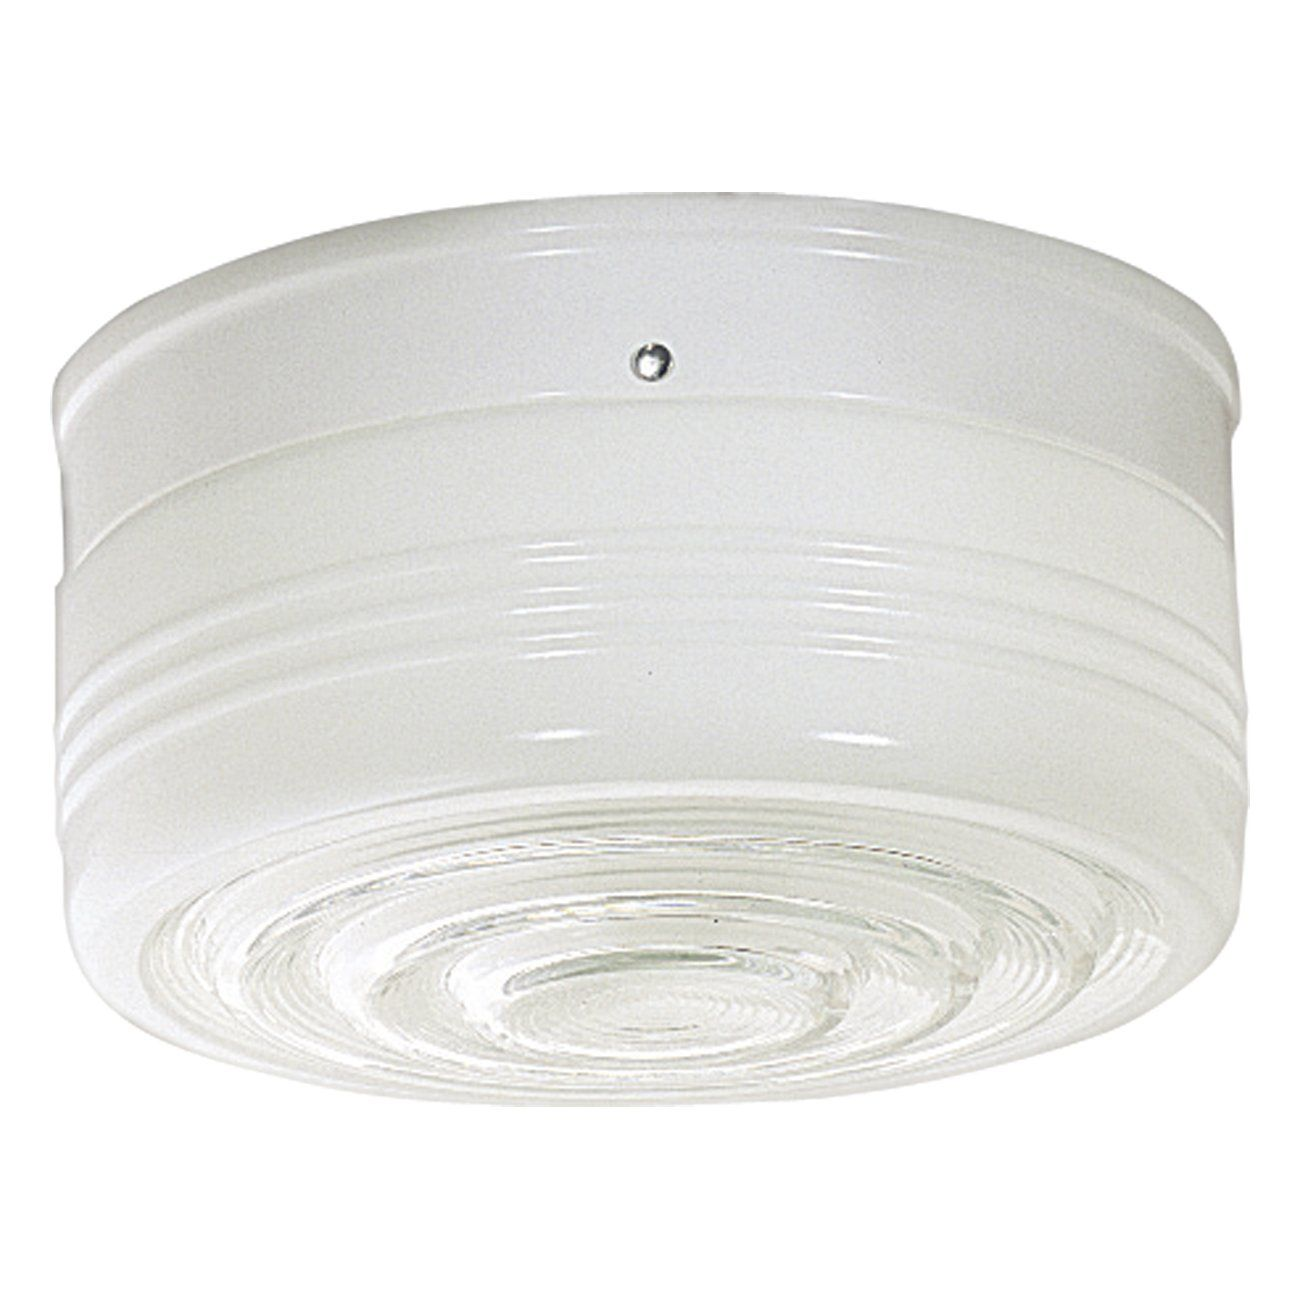 ceiling light bathroom lights flush small litecraft mount spa uk store lighting chrome orlando chandeliers square